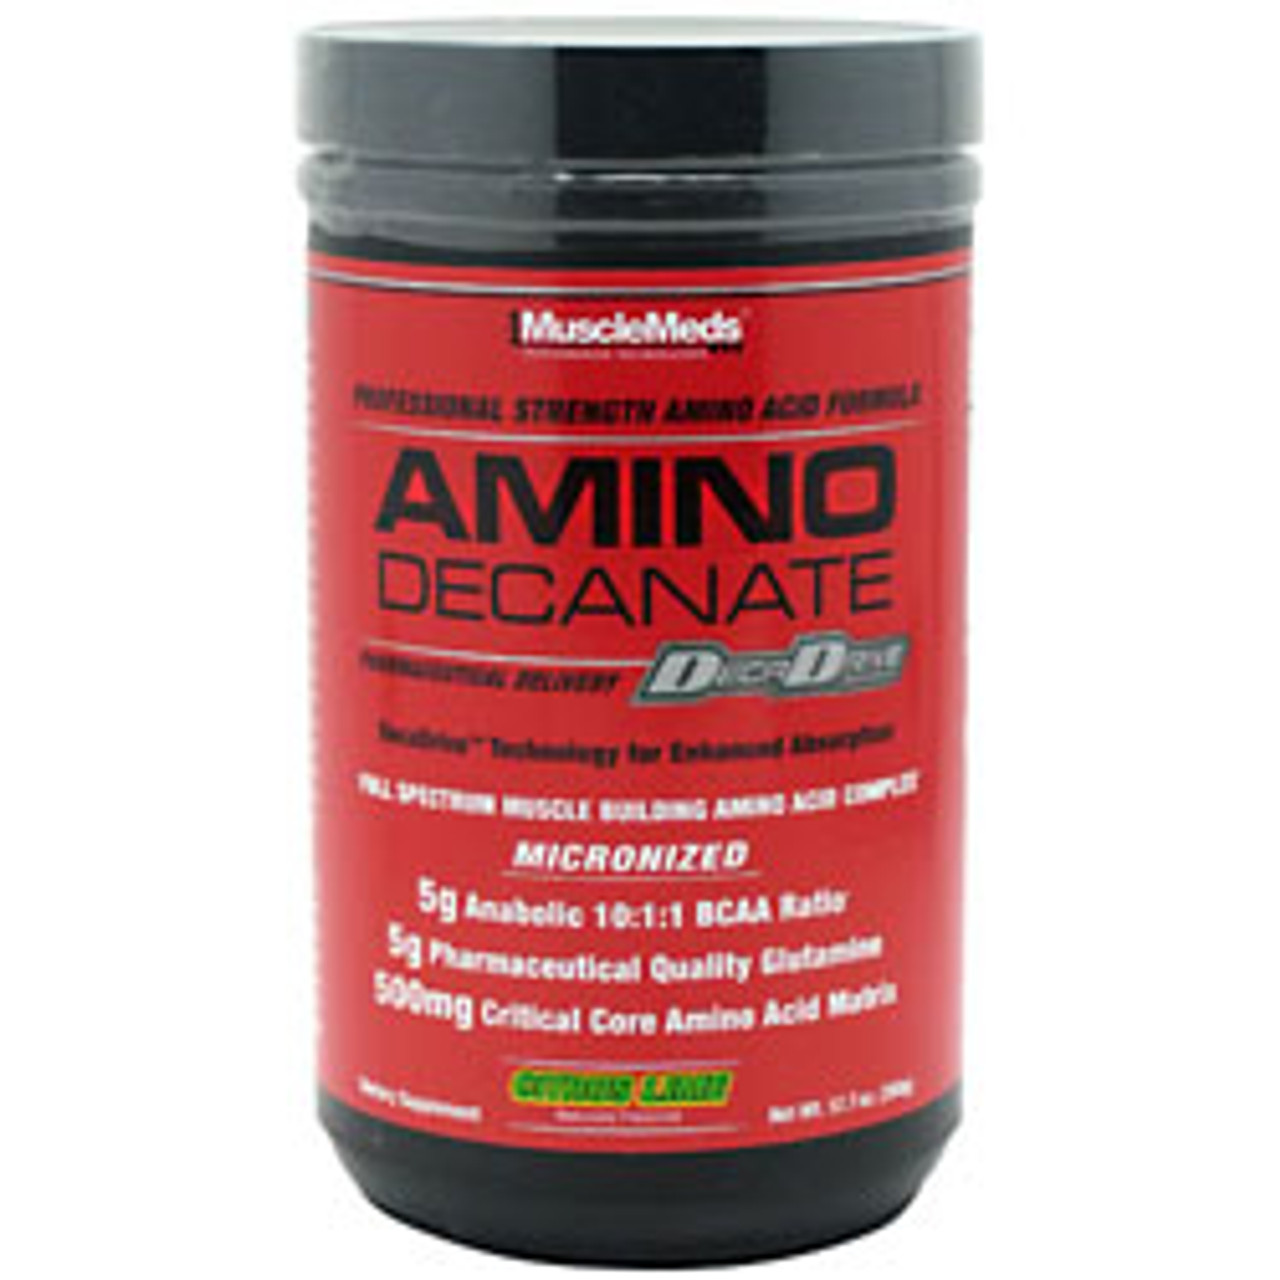 Amino Decanate 11oz Muscle Meds